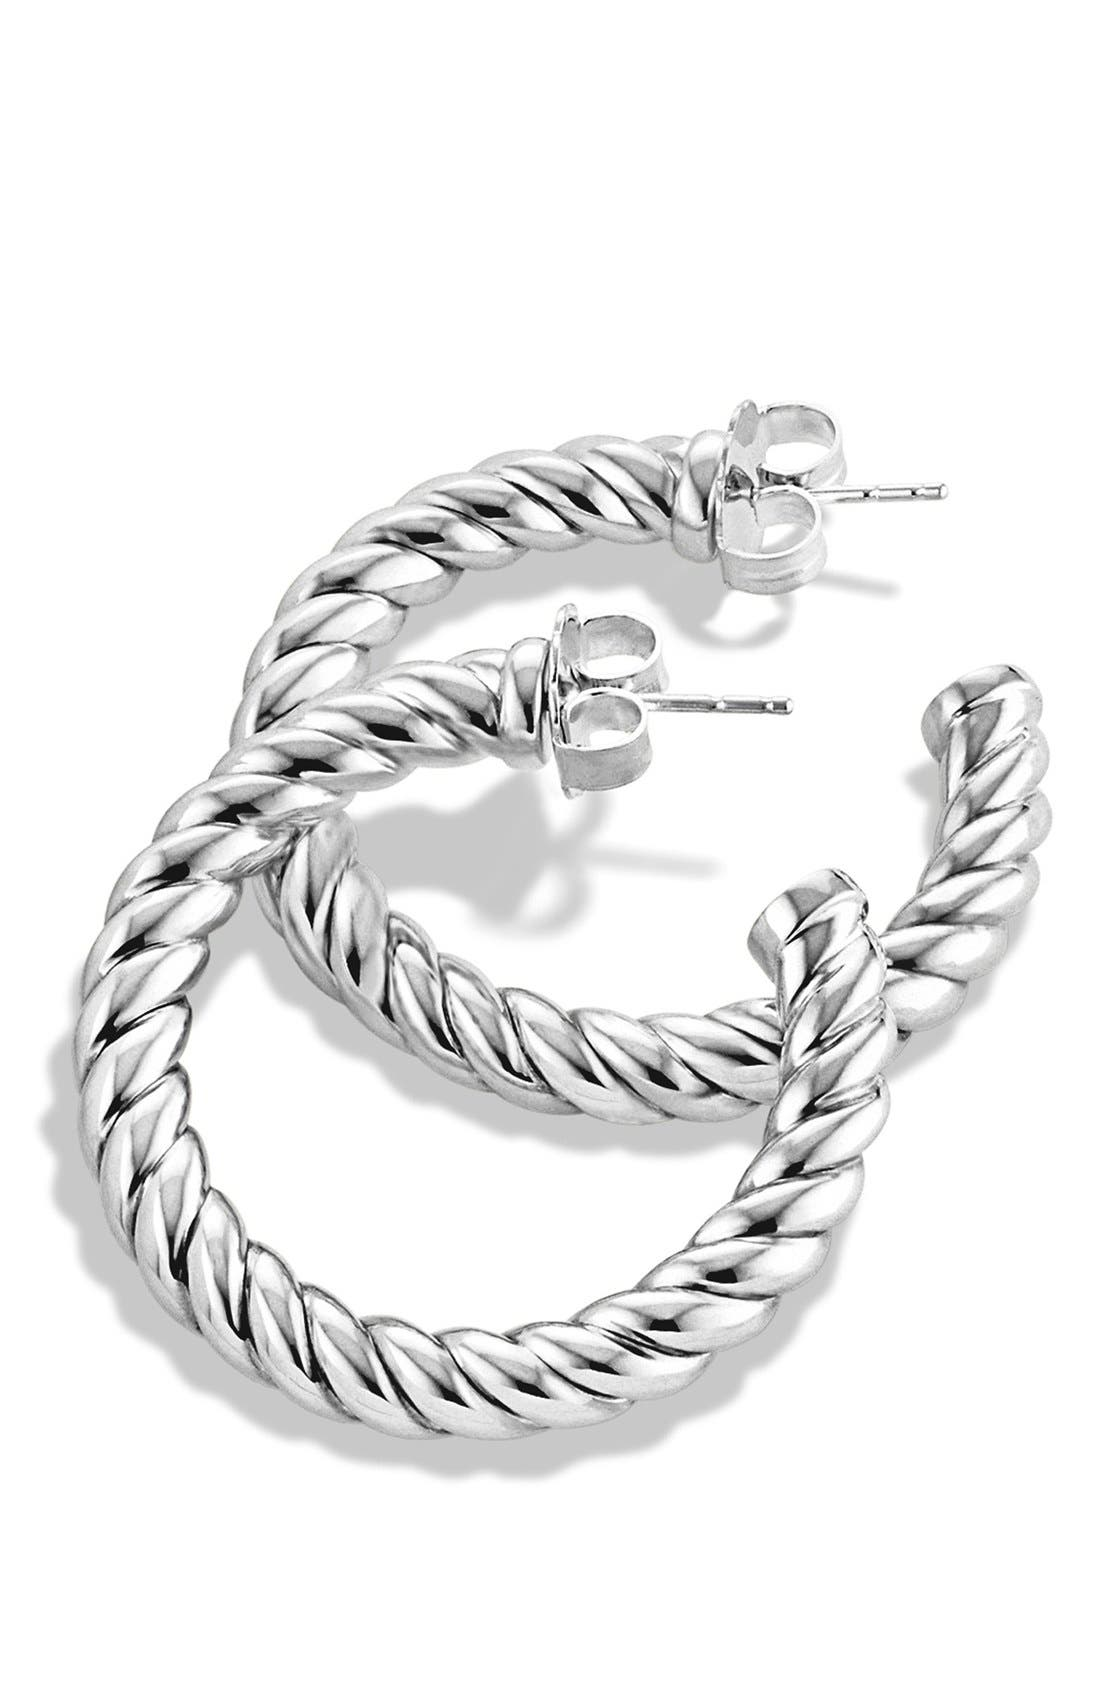 DAVID YURMAN,                             'Cable Classics' Hoop Earrings,                             Alternate thumbnail 3, color,                             SILVER